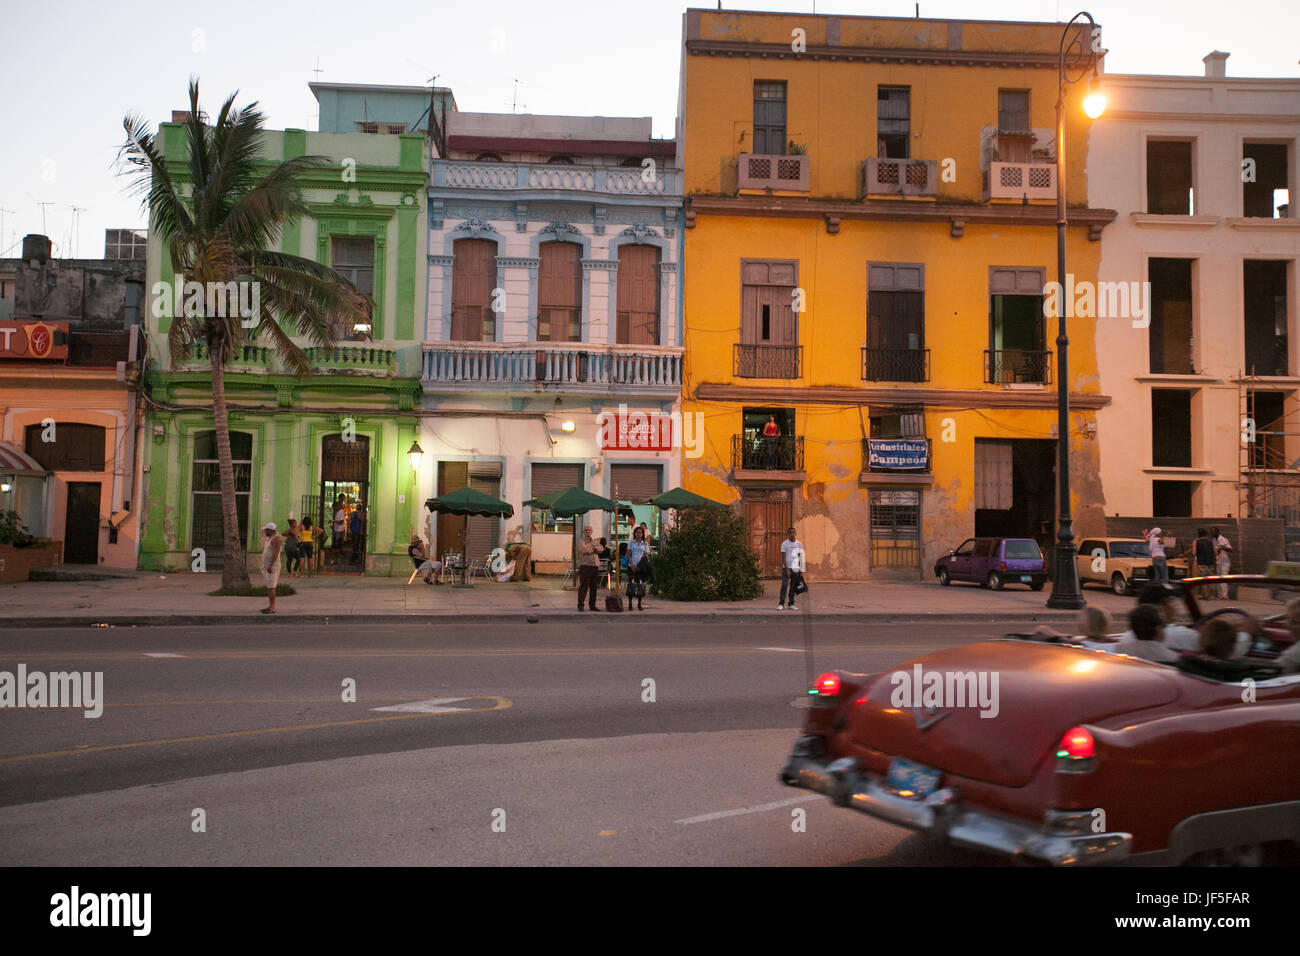 At dusk, people stand on the street as a classic American car drives by in downtown Havana. - Stock Image